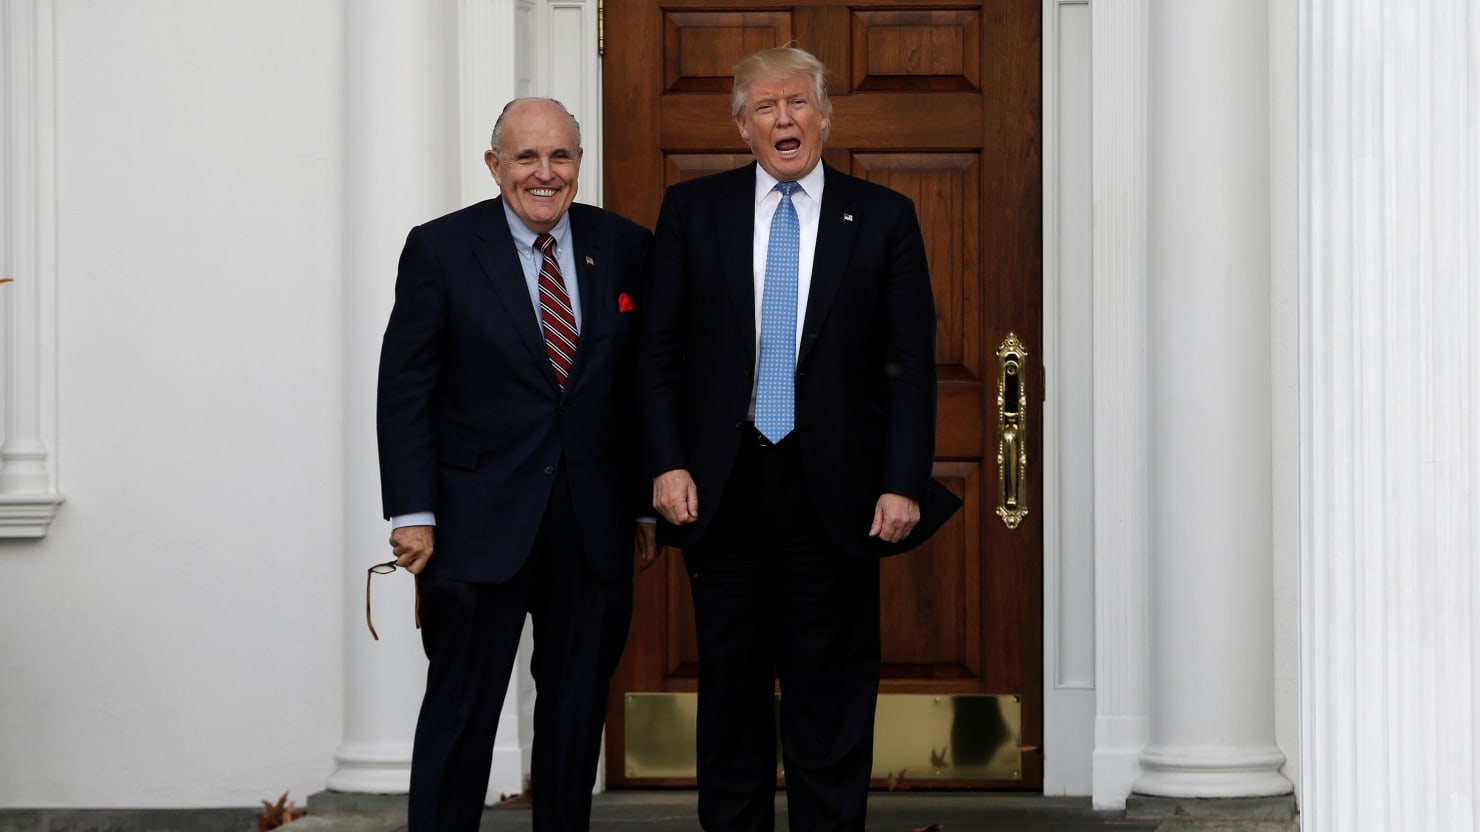 Donald Trump, Rudy Giuliani and Rupert Murdoch's Dubious Hunter Biden 'October Surprise' Reeks of Desperation 1